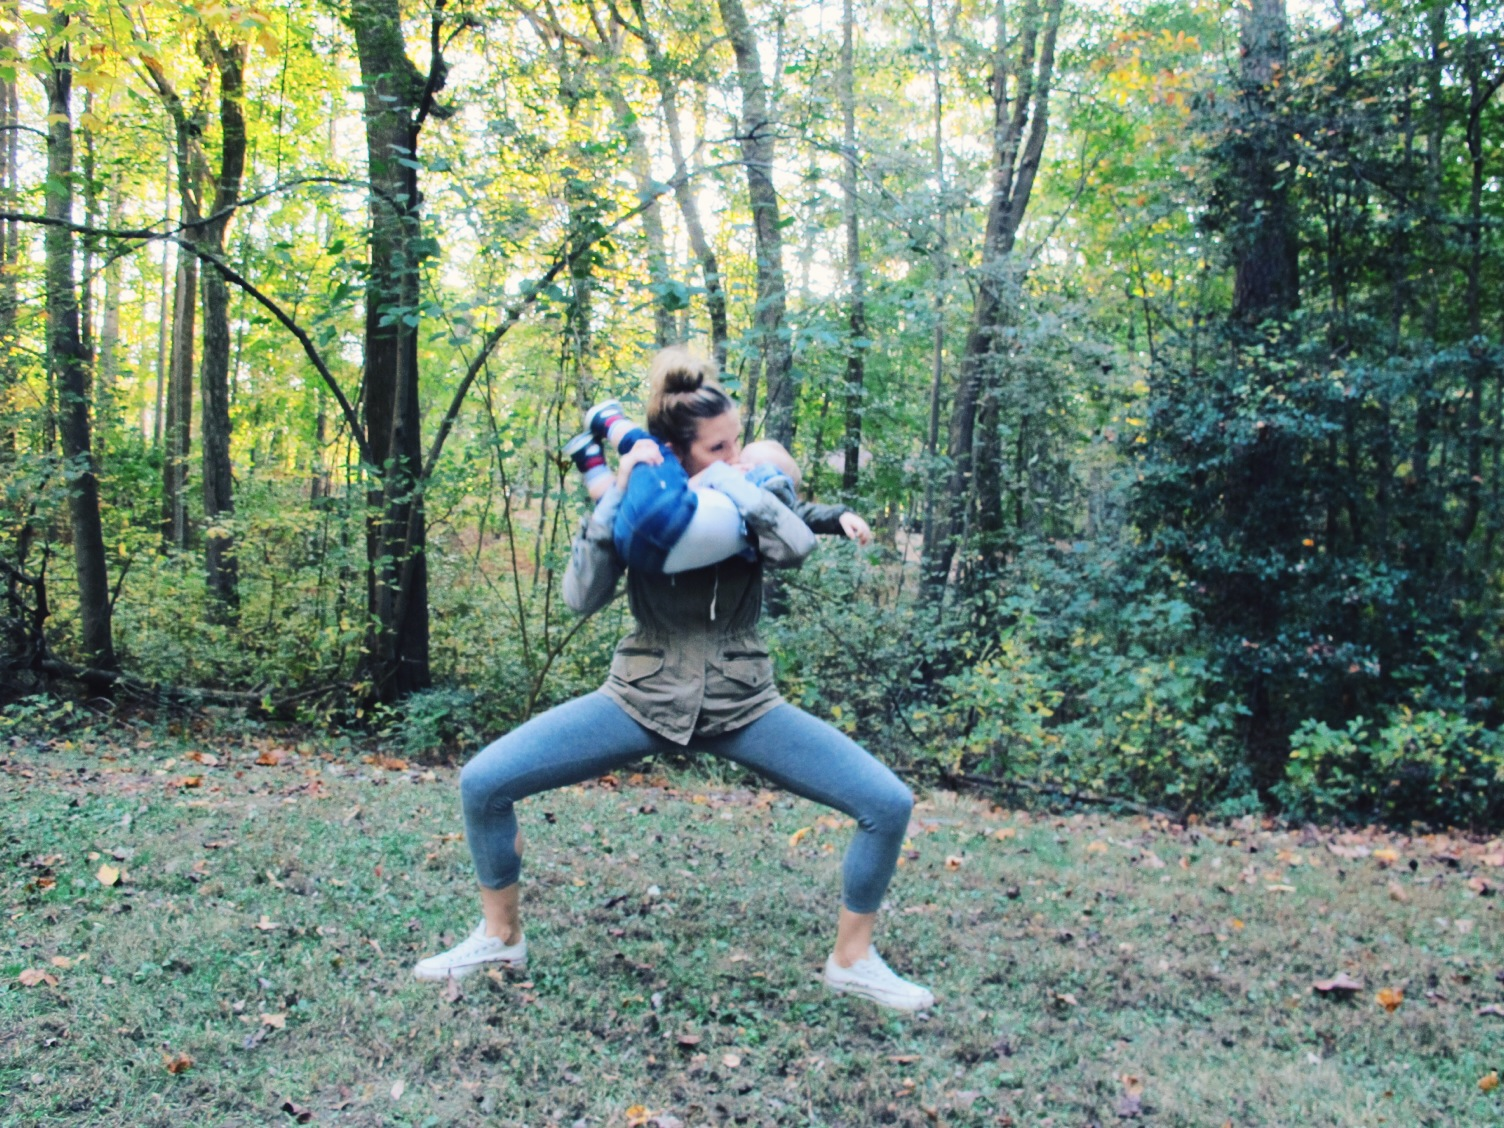 3 moves that feel like play | Swell Mama